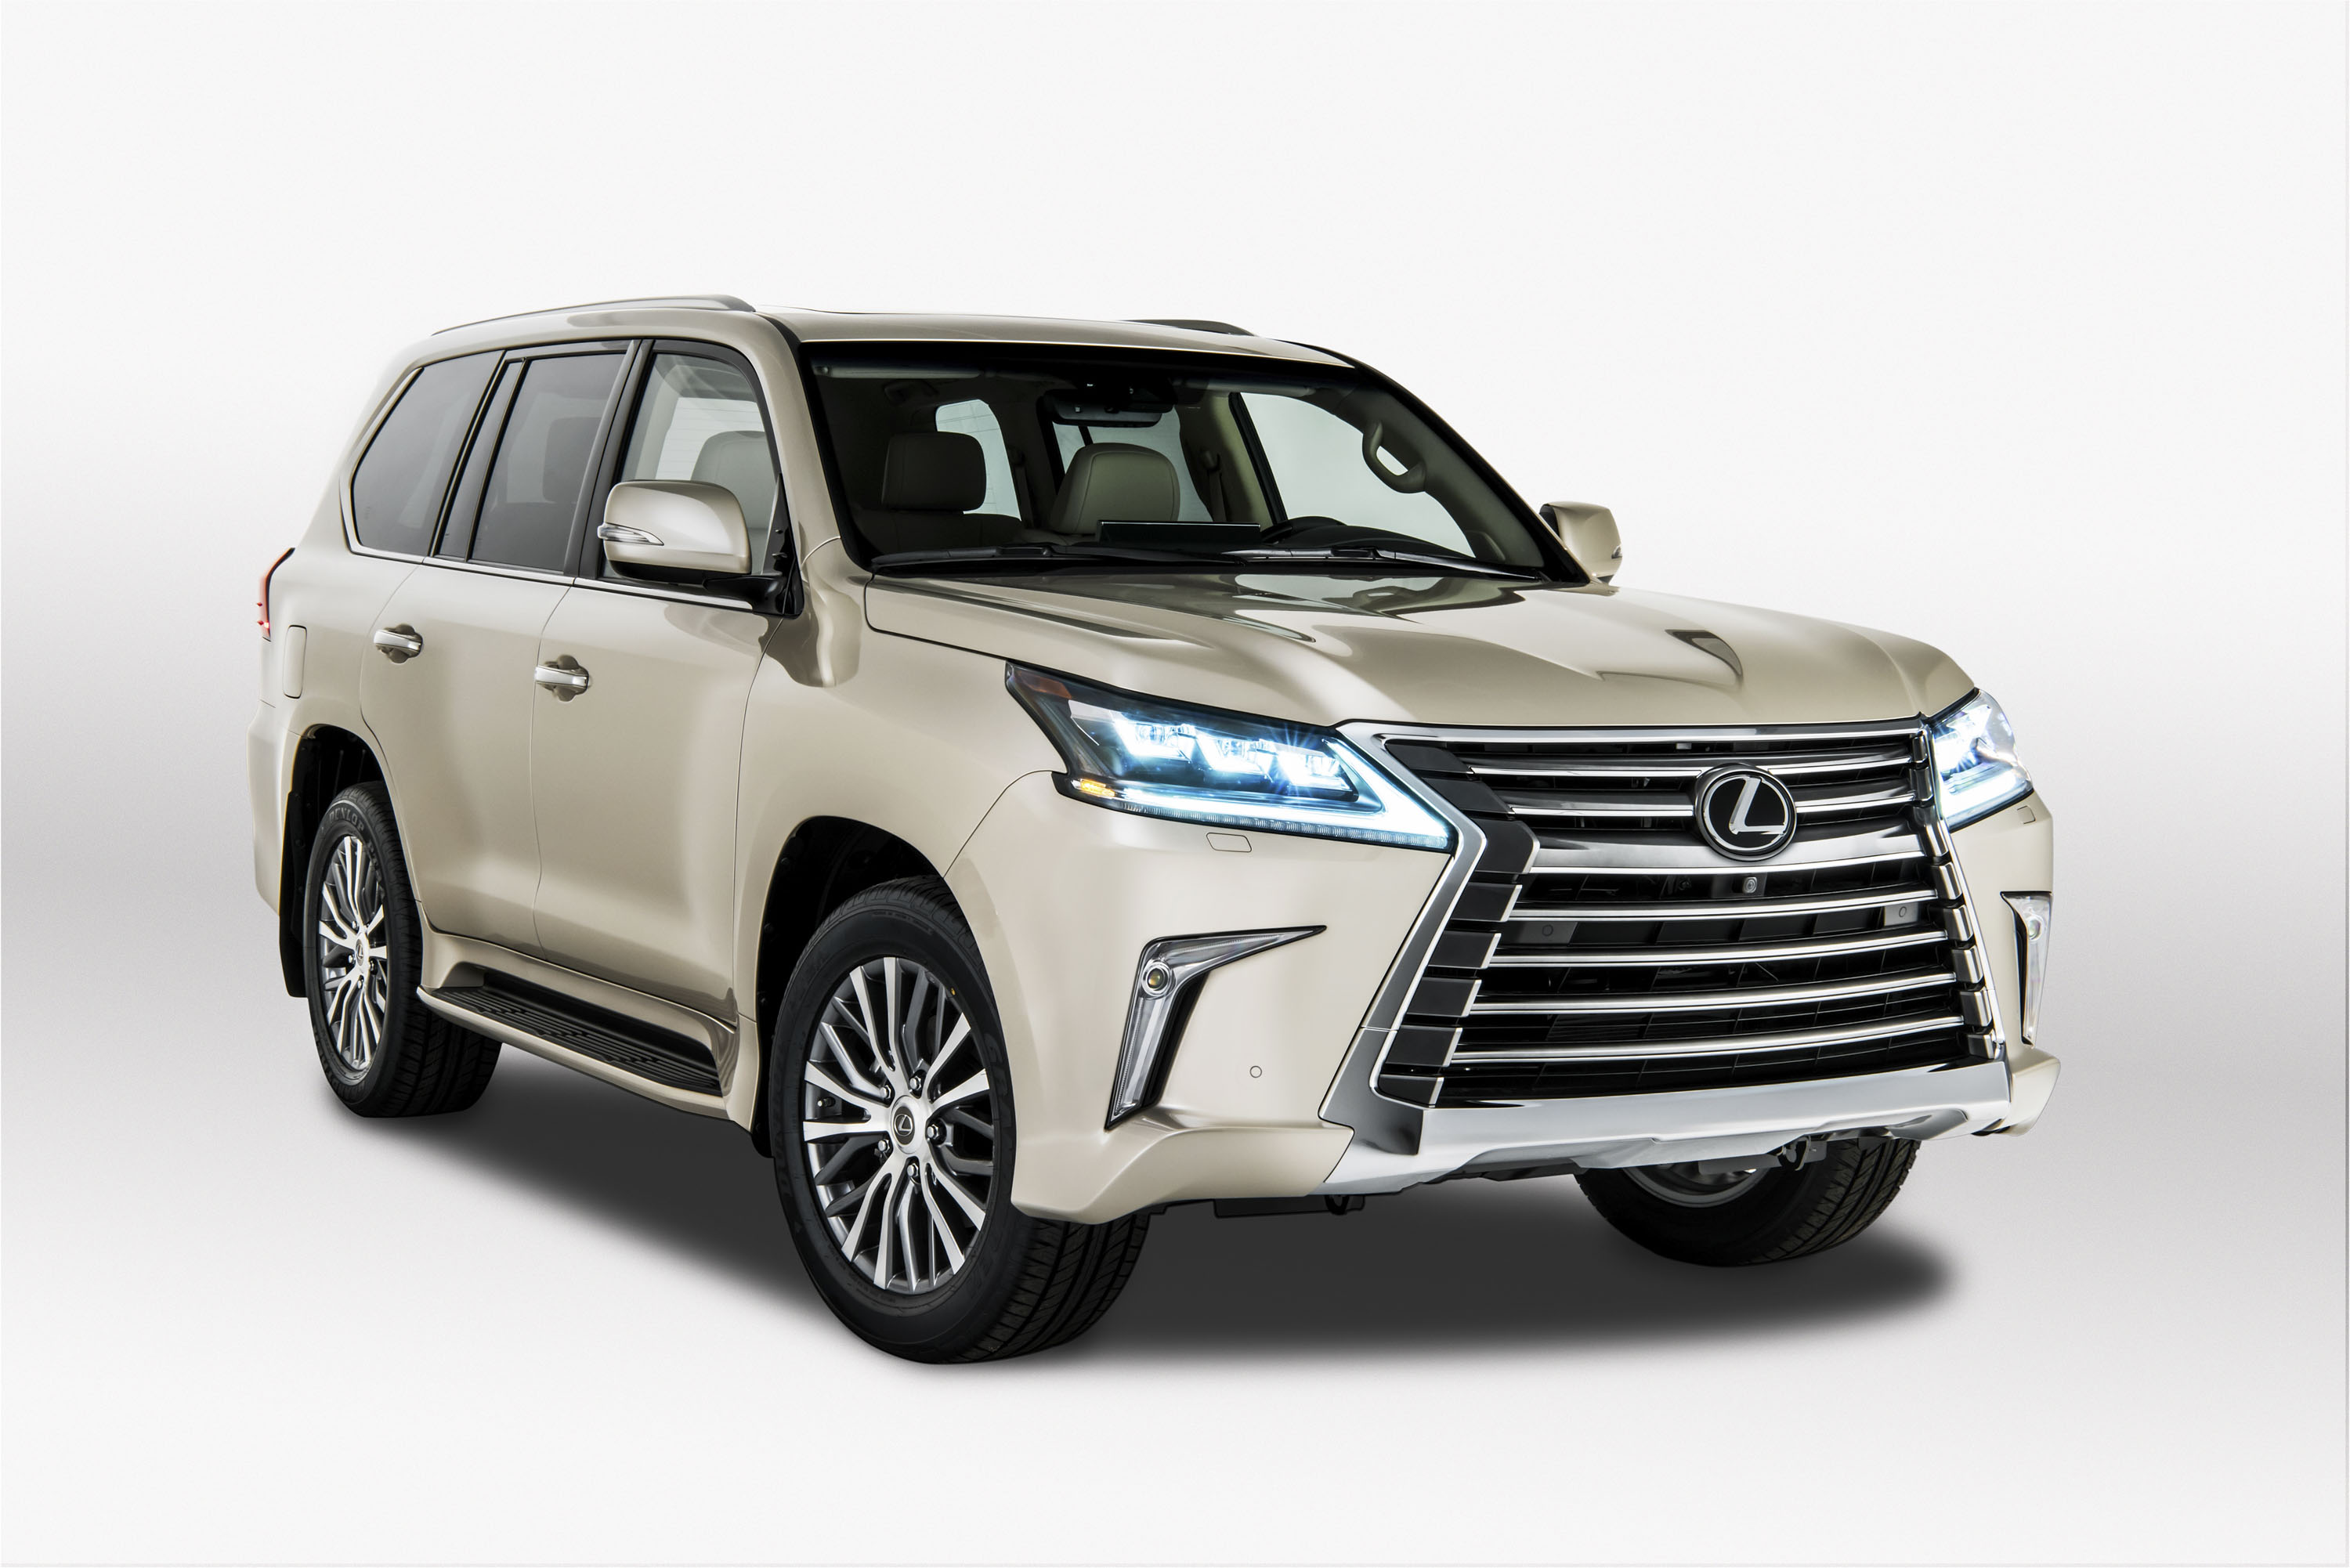 2019 Lexus Lx 570 Review Price >> Eject O Seat O 2019 Lexus Lx Drops Third Row And 5 000 Off The